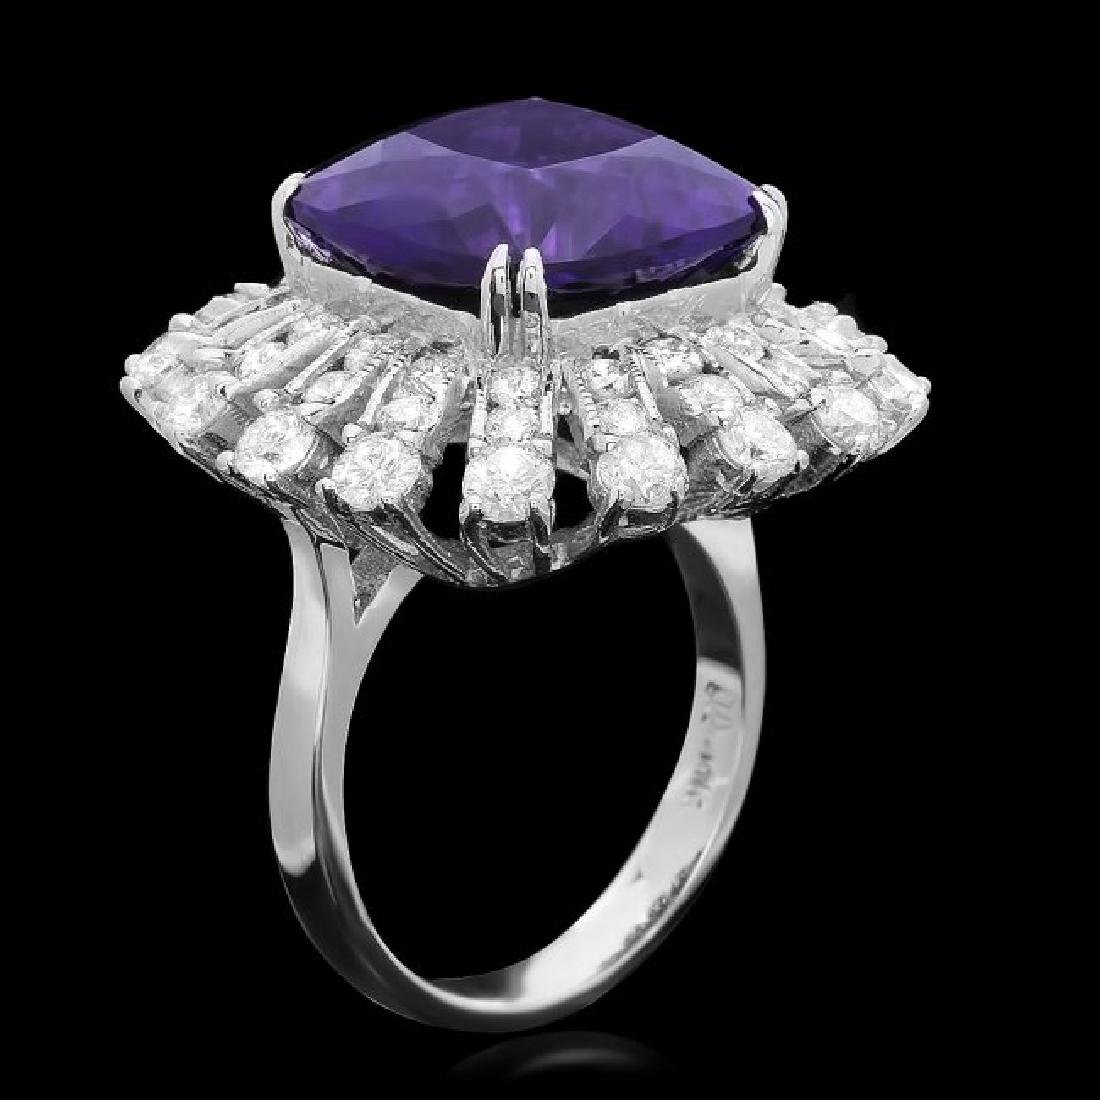 14k Gold 9.00ct Amethyst 3.85ct Diamond Ring - 2